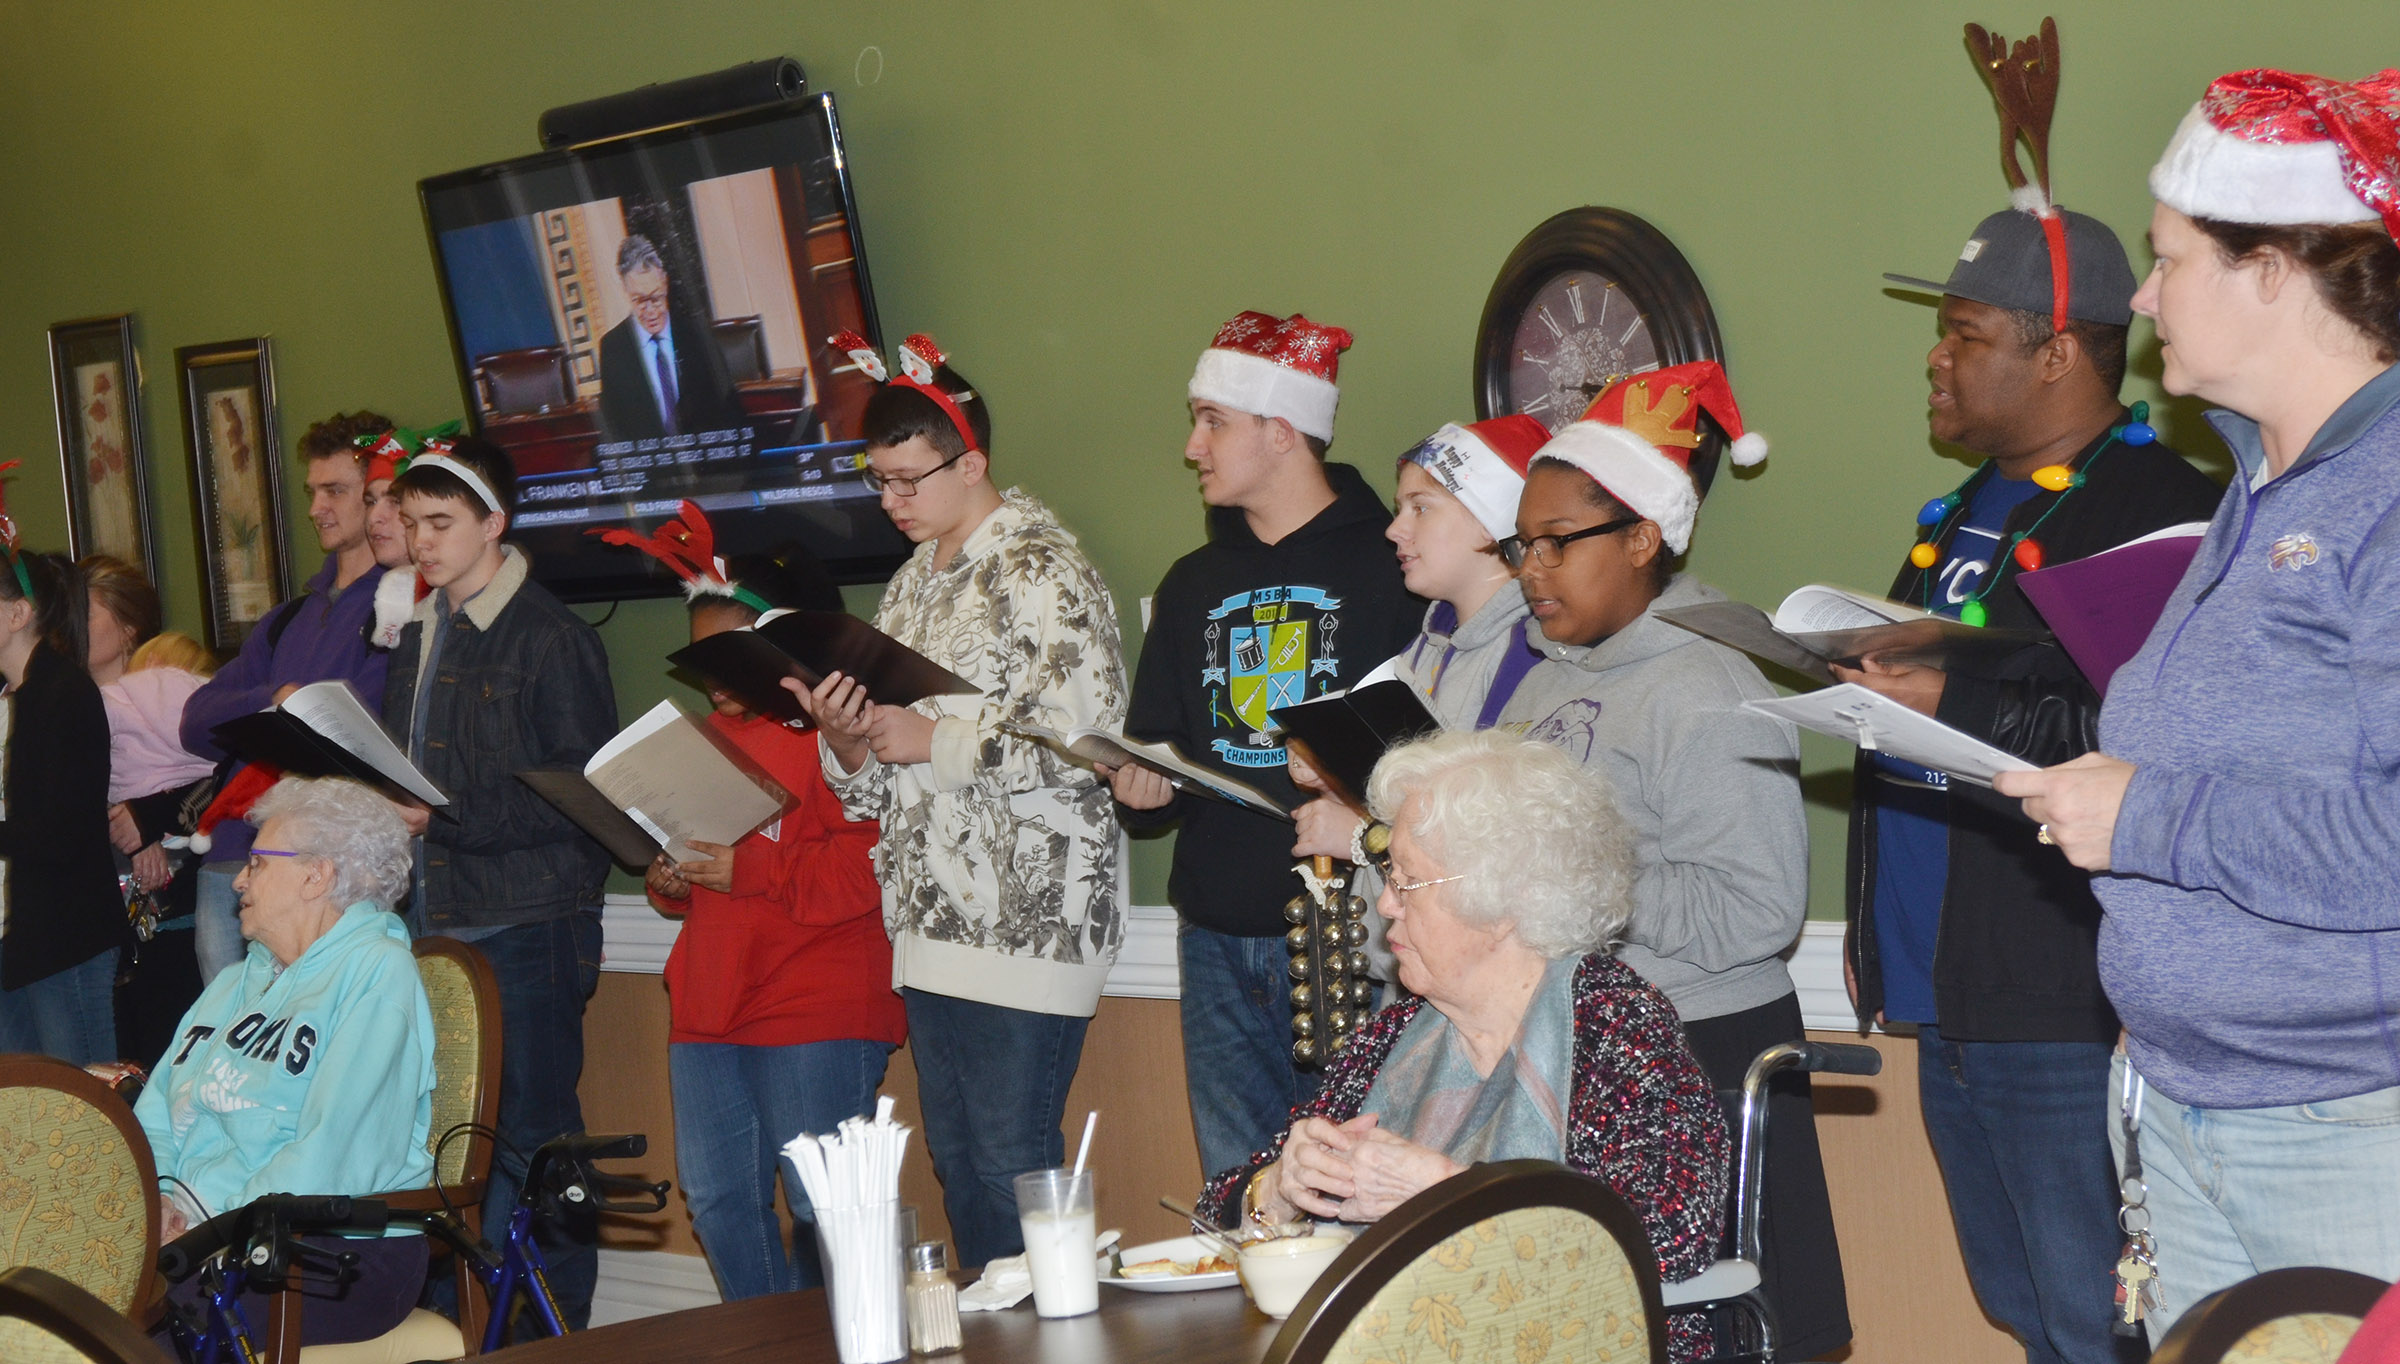 Campbellsville Independent Schools' students and teachers sing Christmas carols at Bluegrass Way.